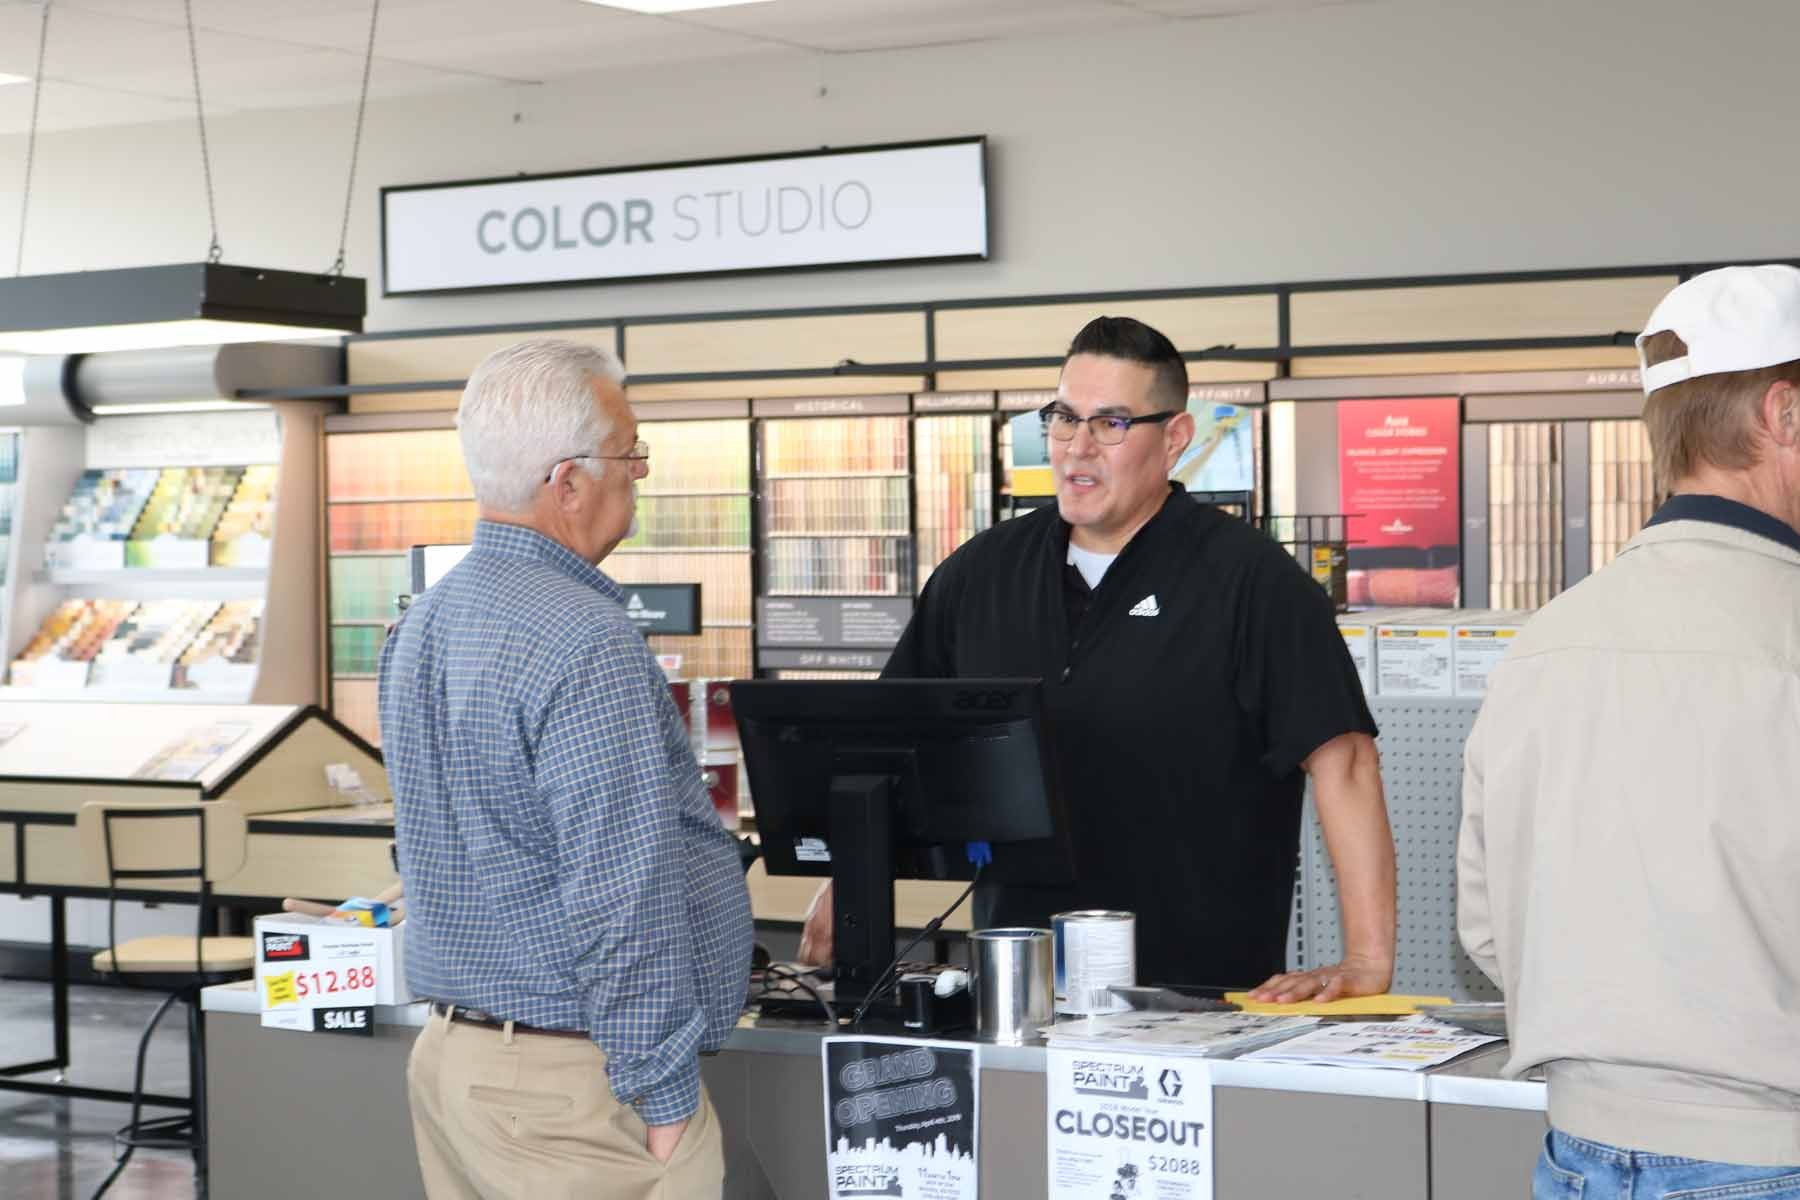 Counter Sales Paint Store Employee